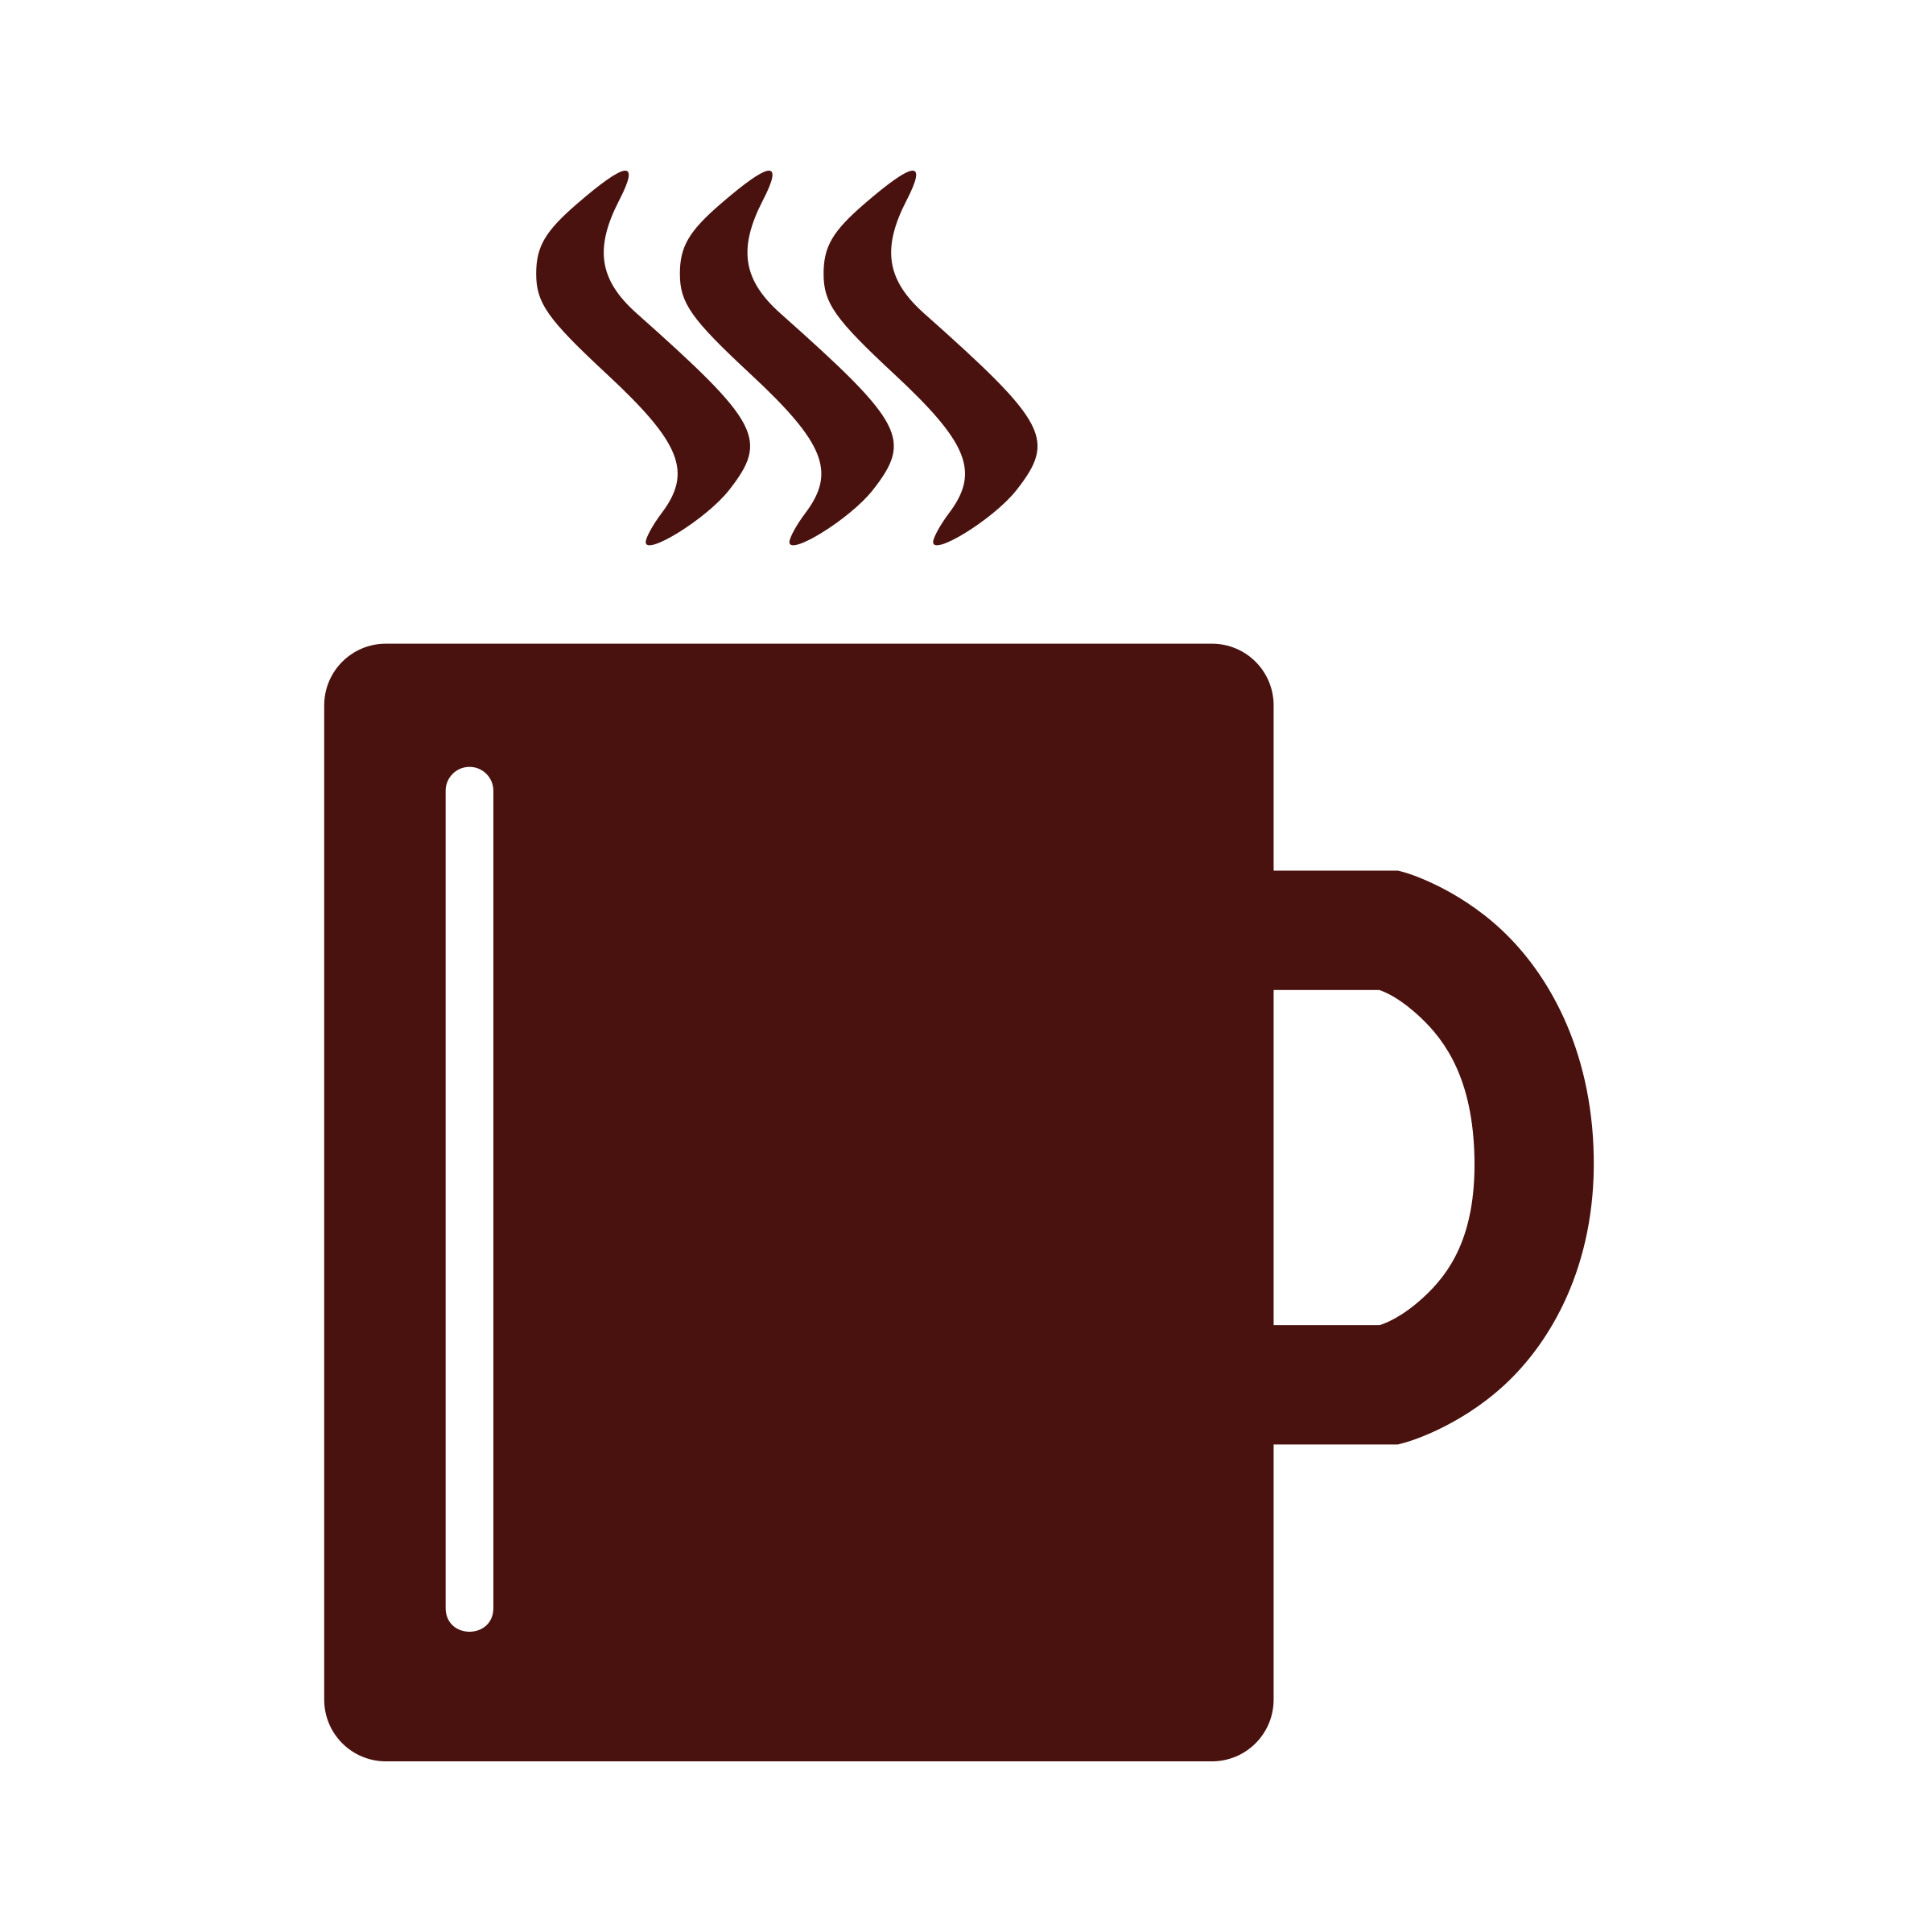 Clipart coffee icon. Mug at getdrawings com